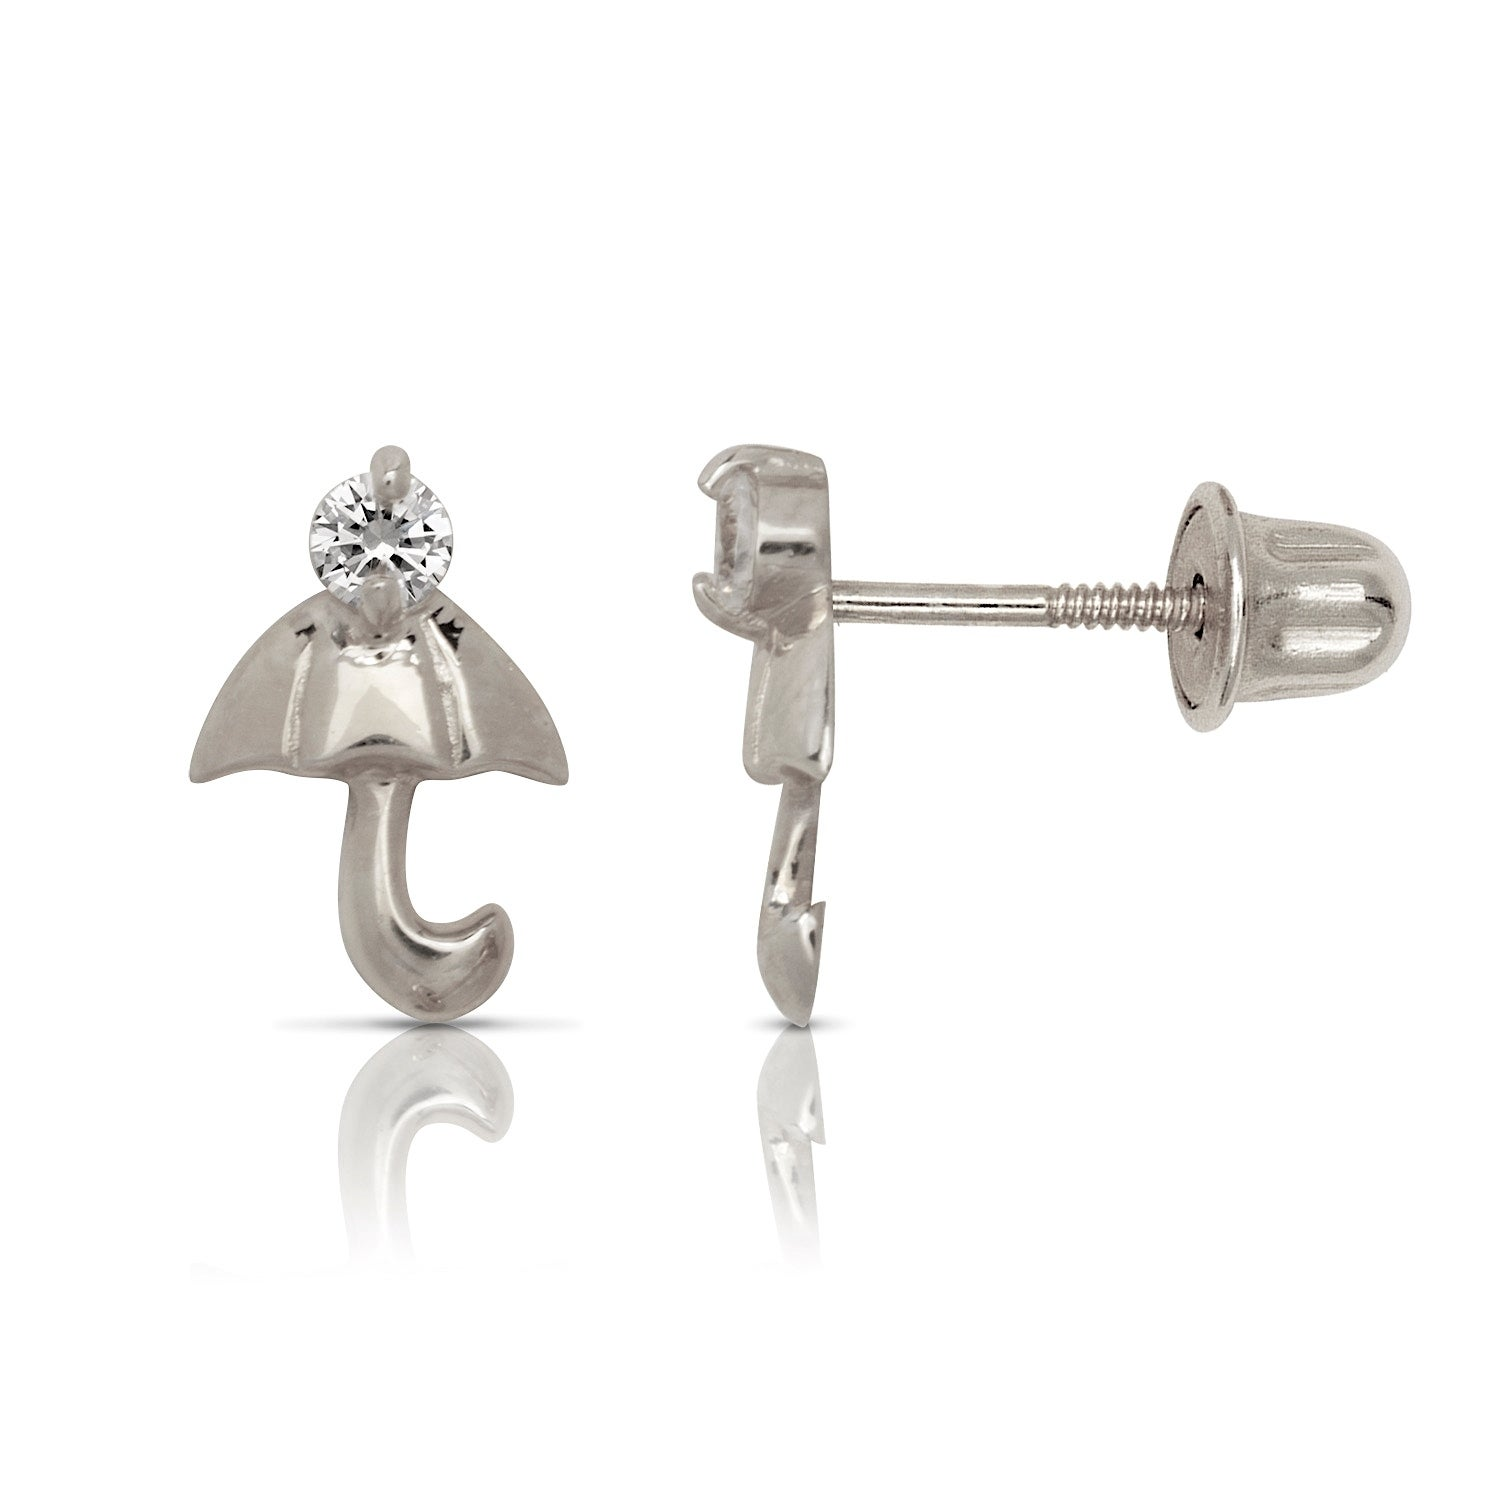 NEW! 14k Solid YELLOW or WHITE Gold CZ Infinity Ear Climber Earrings!!